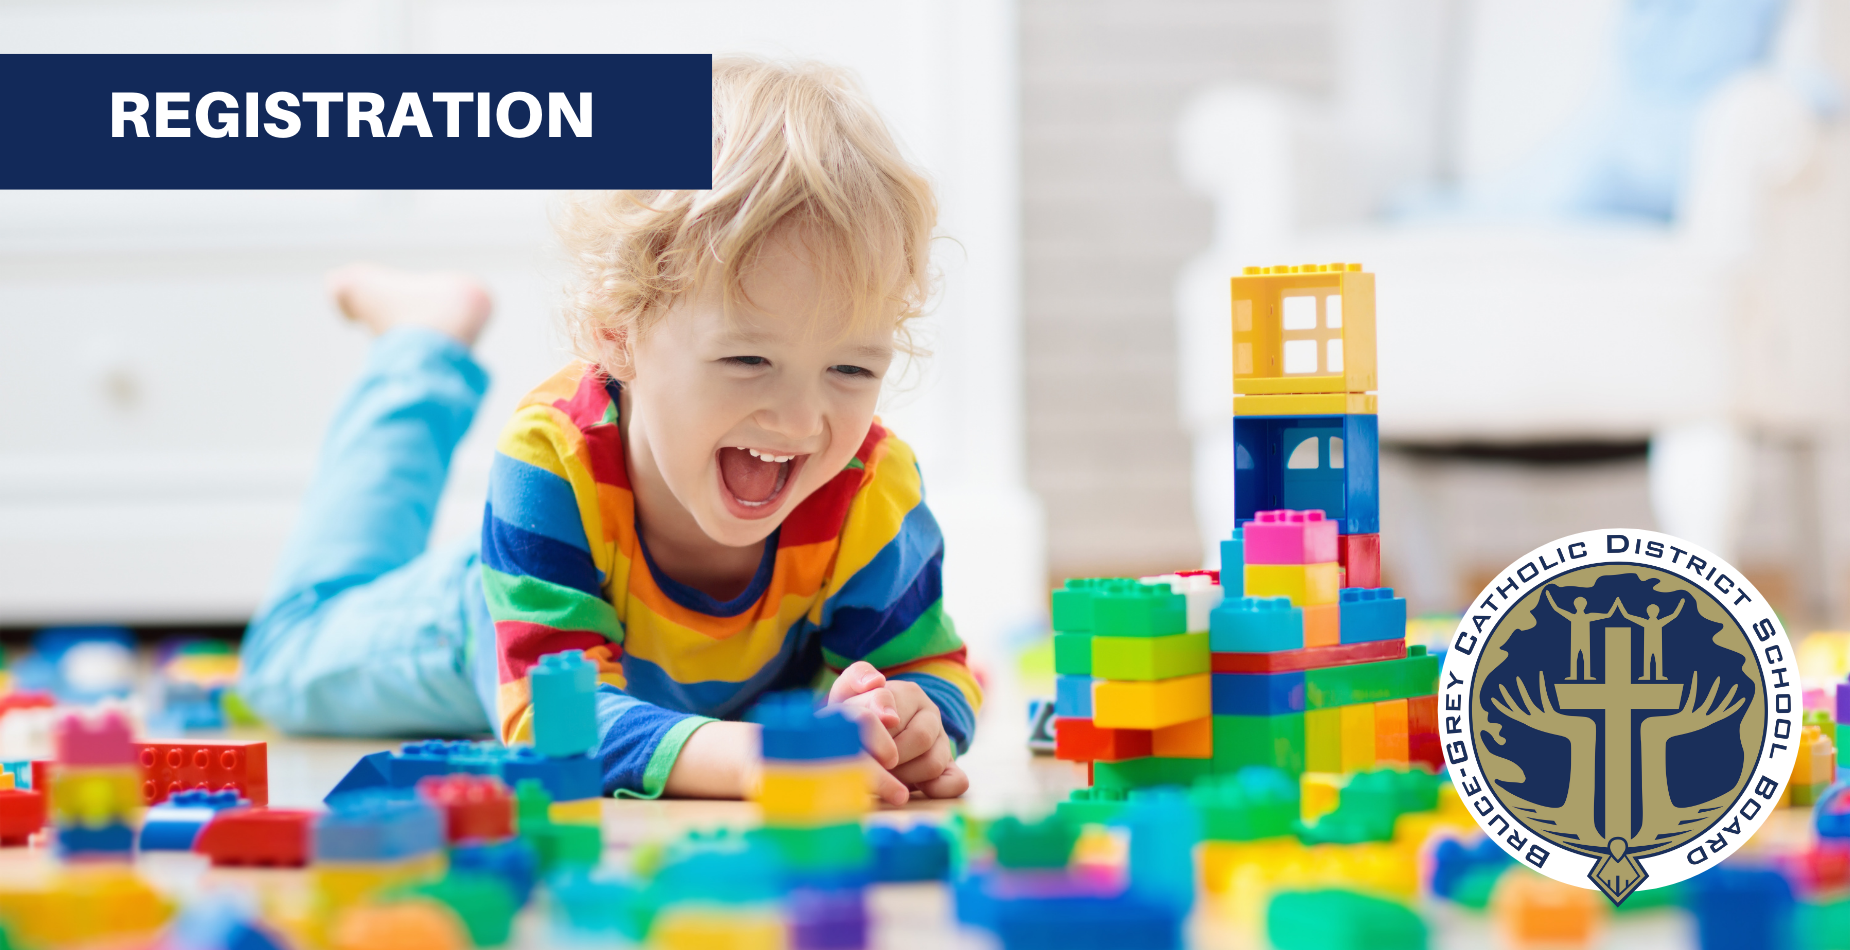 smiling child playing with blocks with text saying Registration